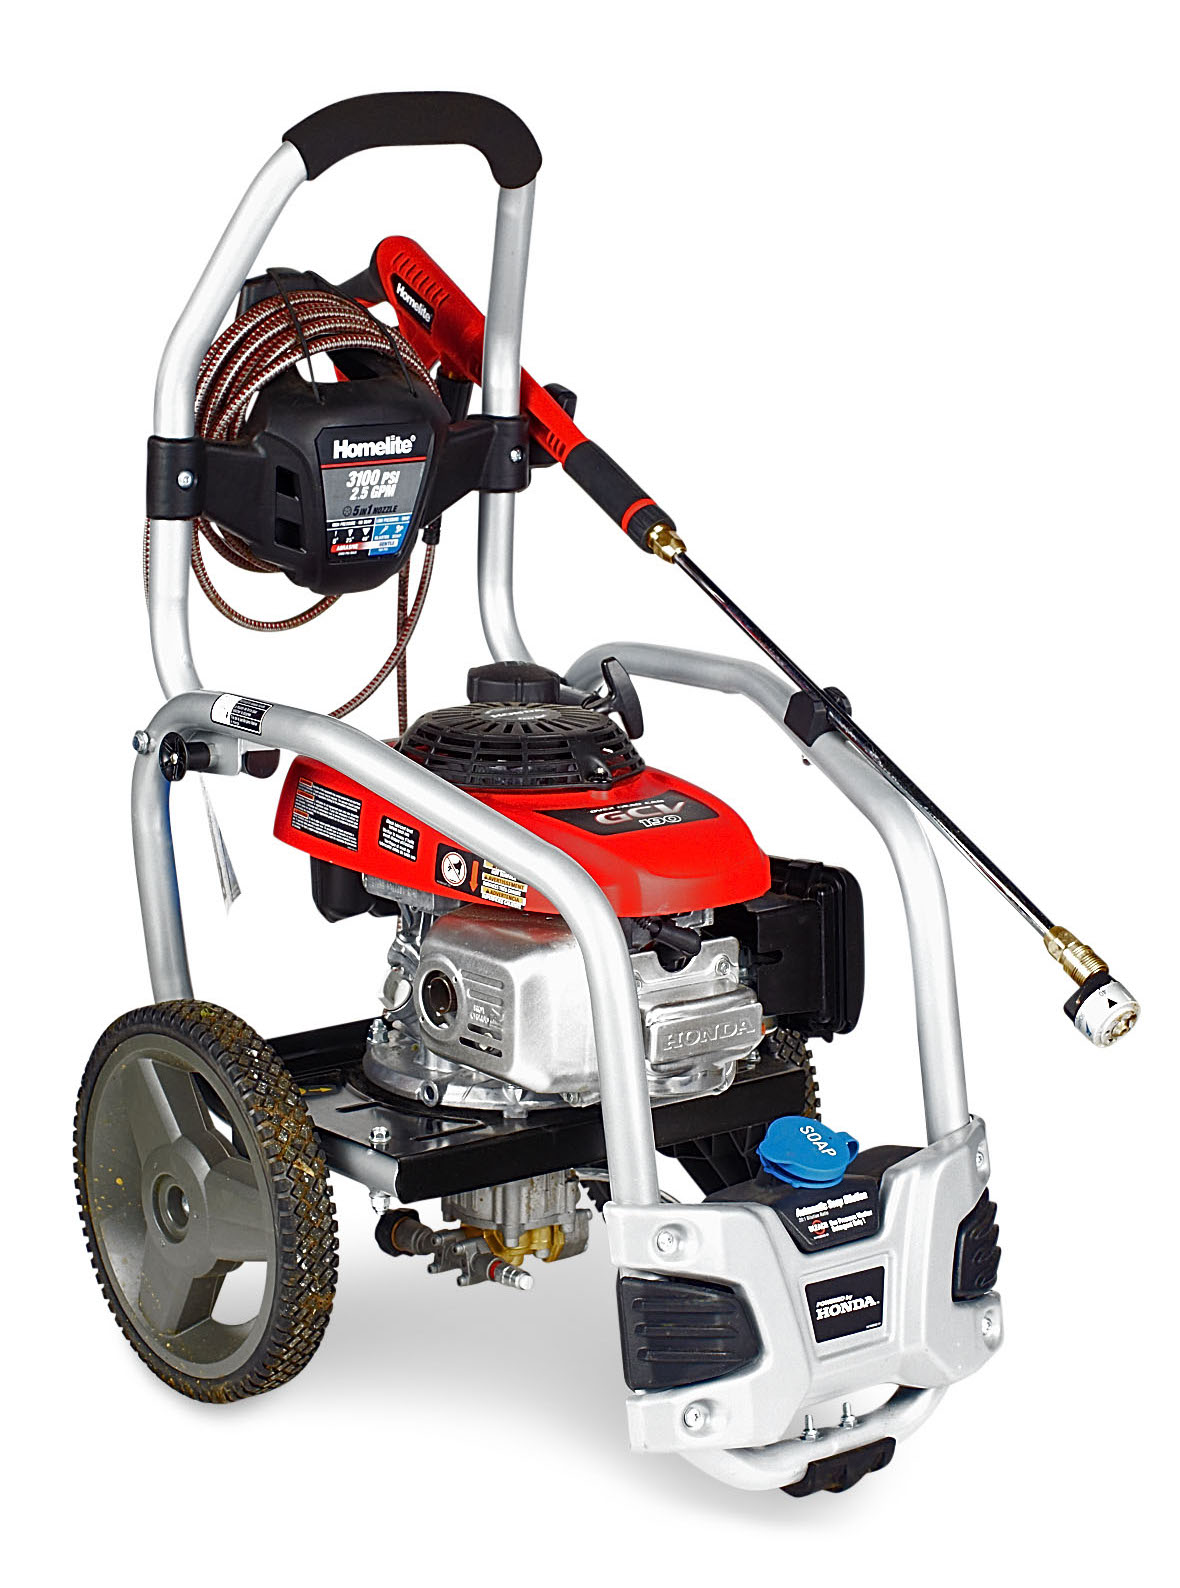 We Test The Top Small Pressure Washers on pressure washing jobs